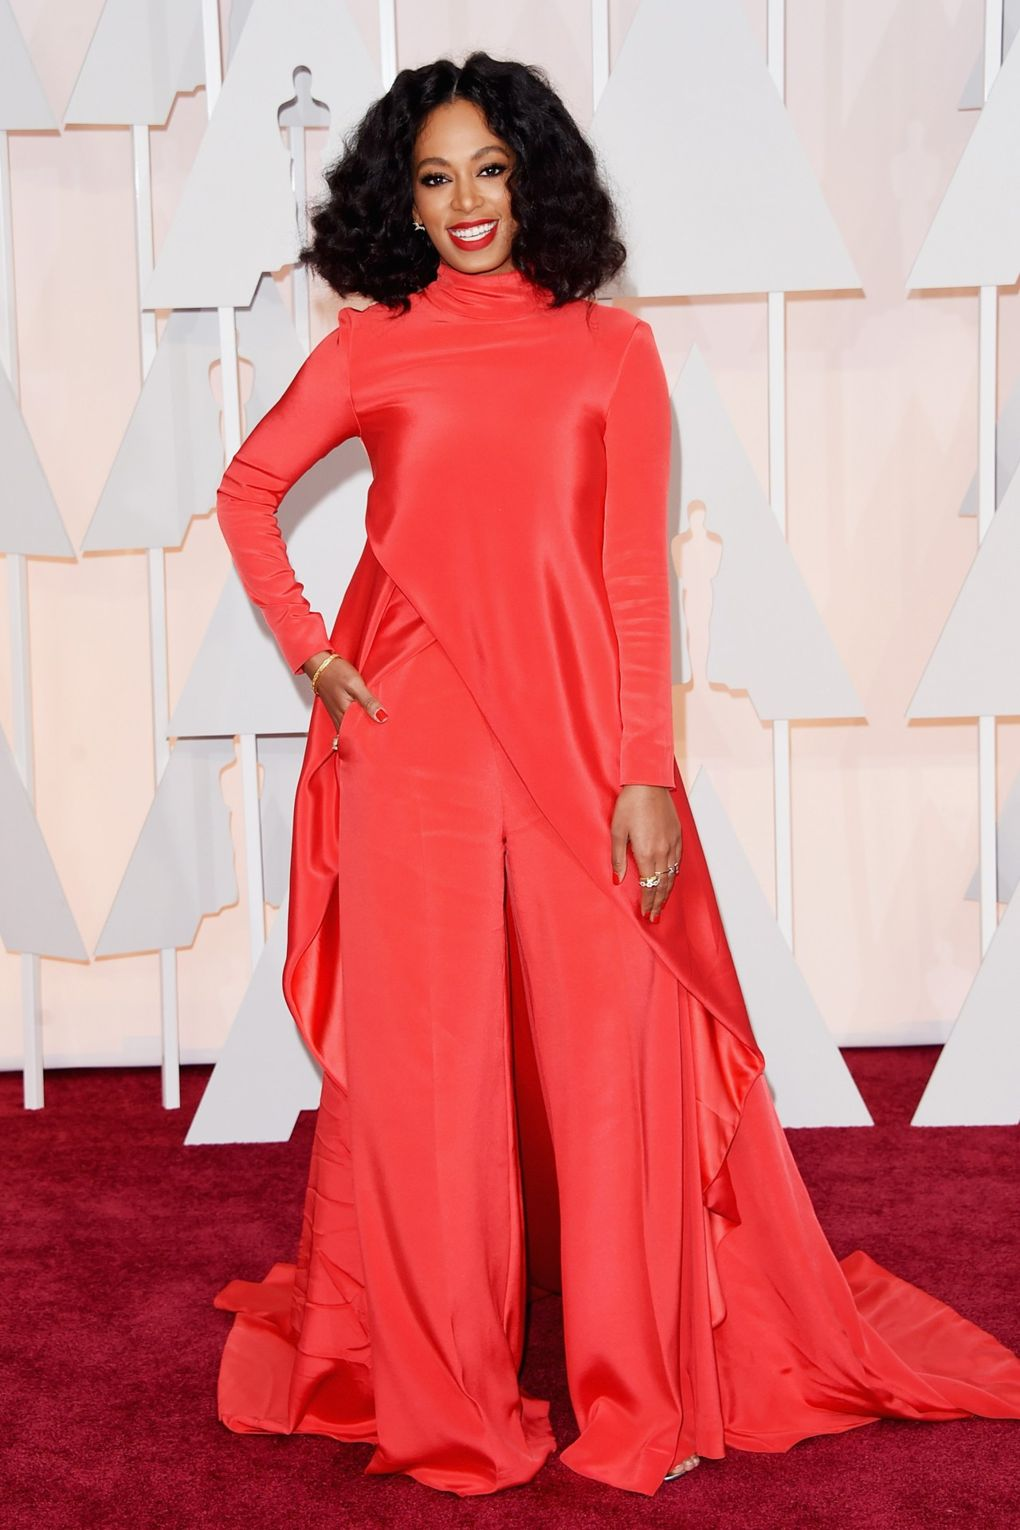 Solange Knowles wearing Christian Siriano in 2015. Photo via Getty Images